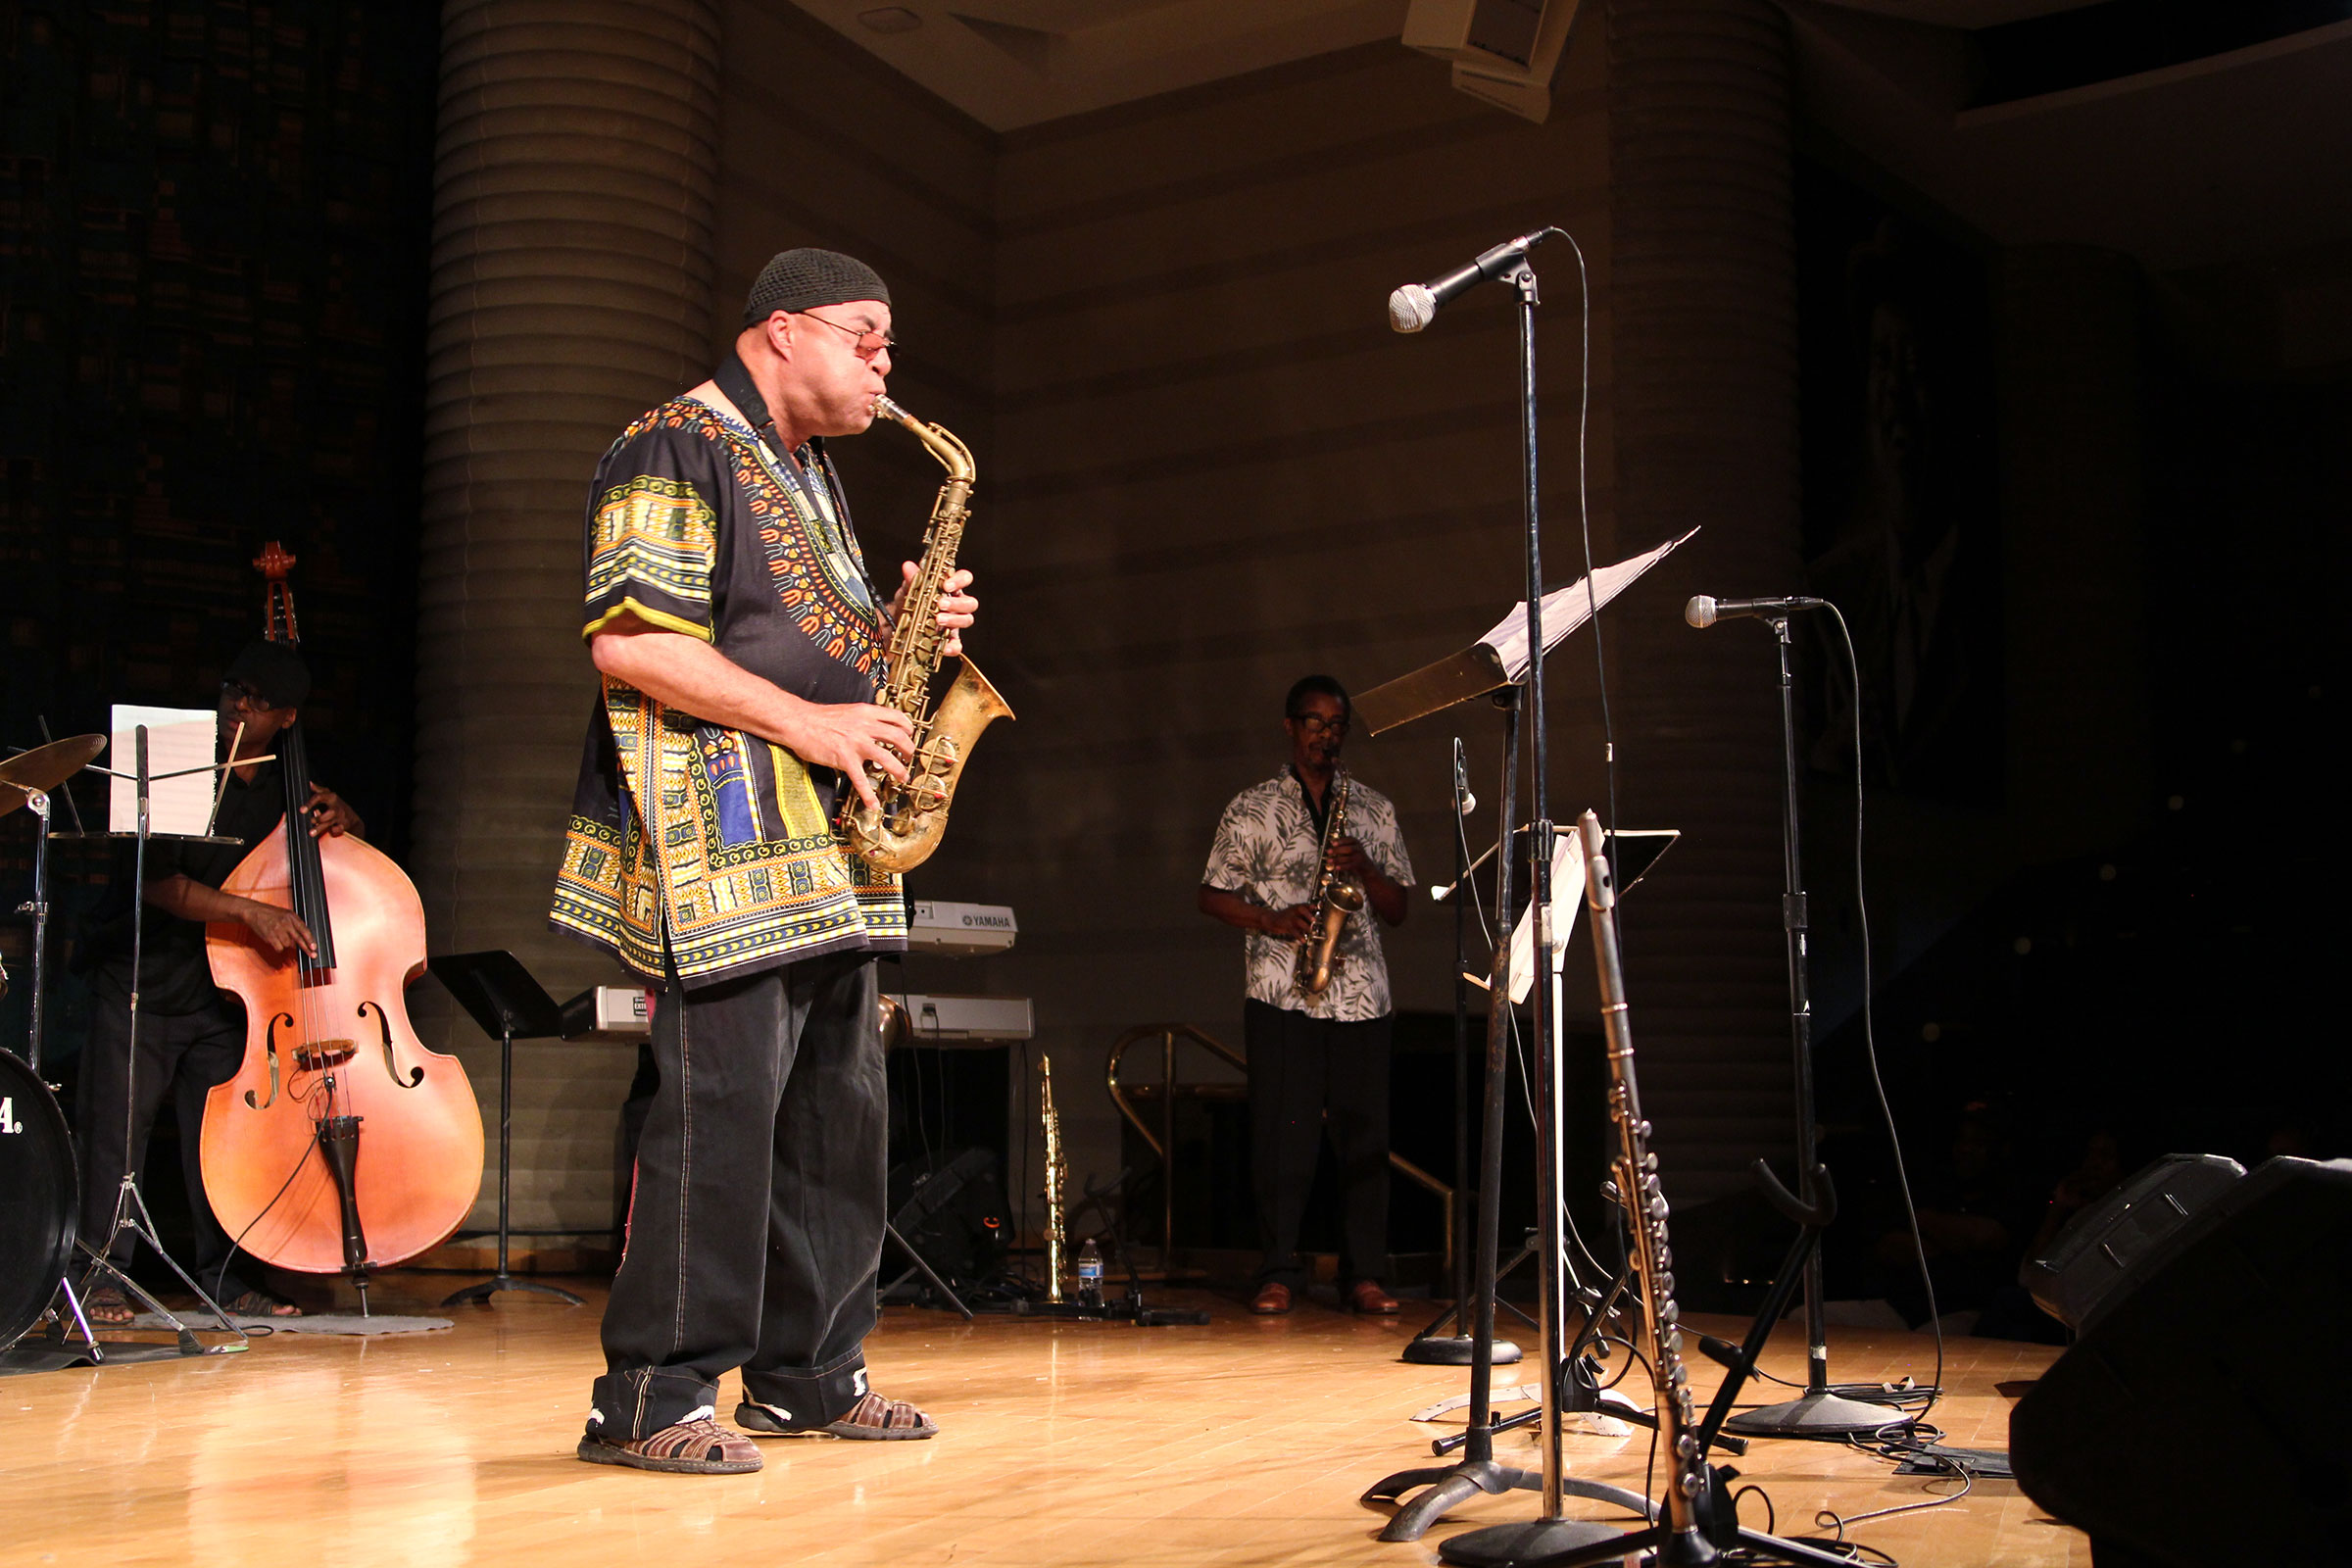 The Tony Holland Ensemble plays the music of Eric Dolphy at the Conference of the Birds at The Wright Museum of African American History. Eileen Solange Rodriguez/Audubon